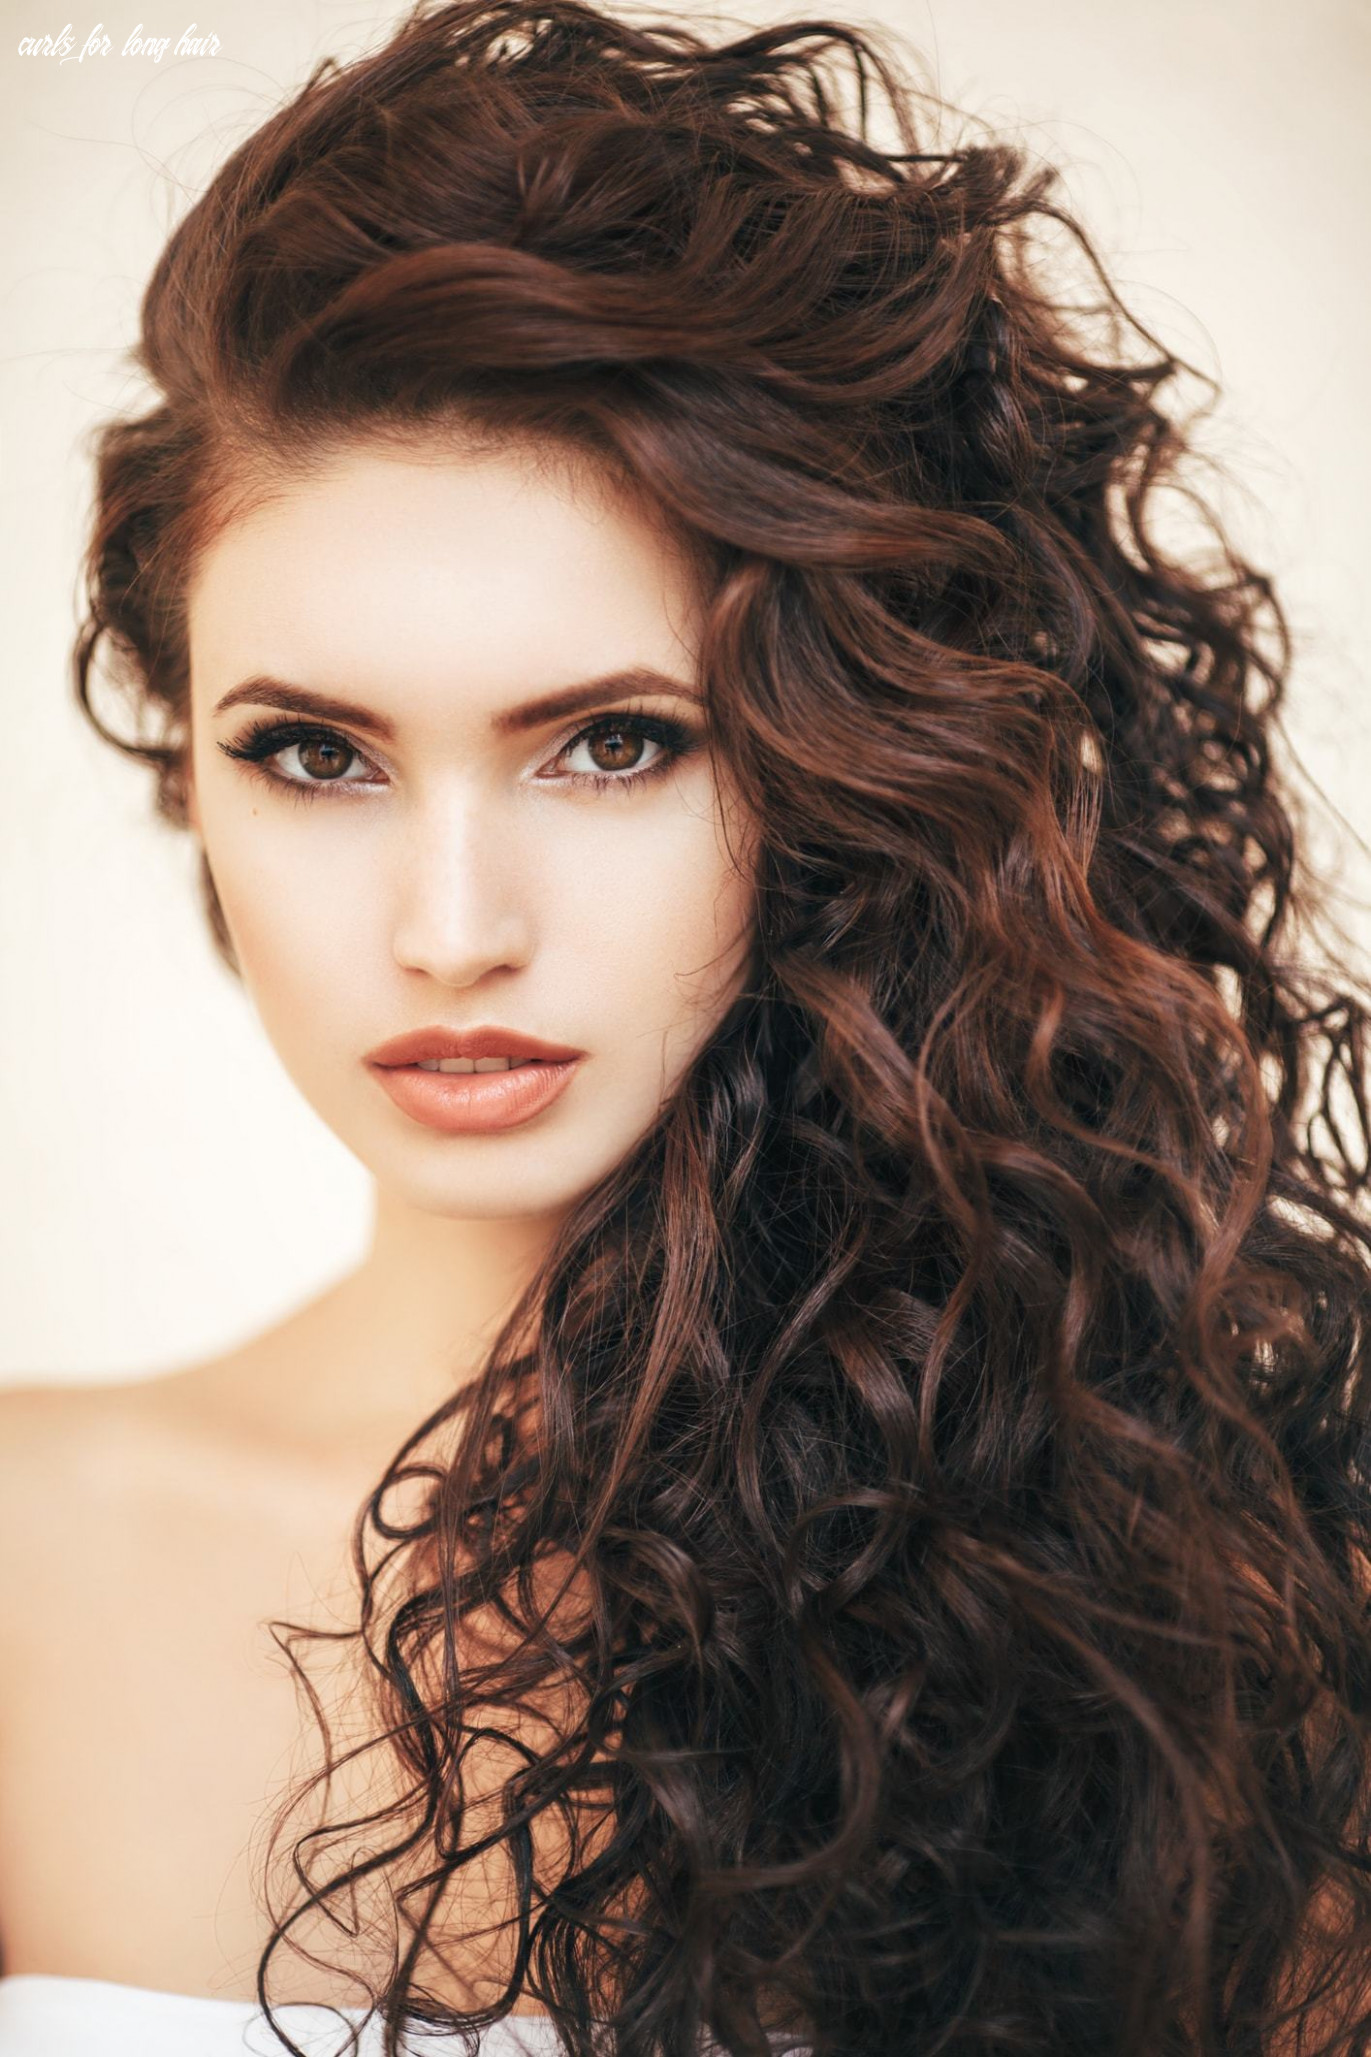 Curly hairstyles for long hair: 9 styles to consider curls for long hair